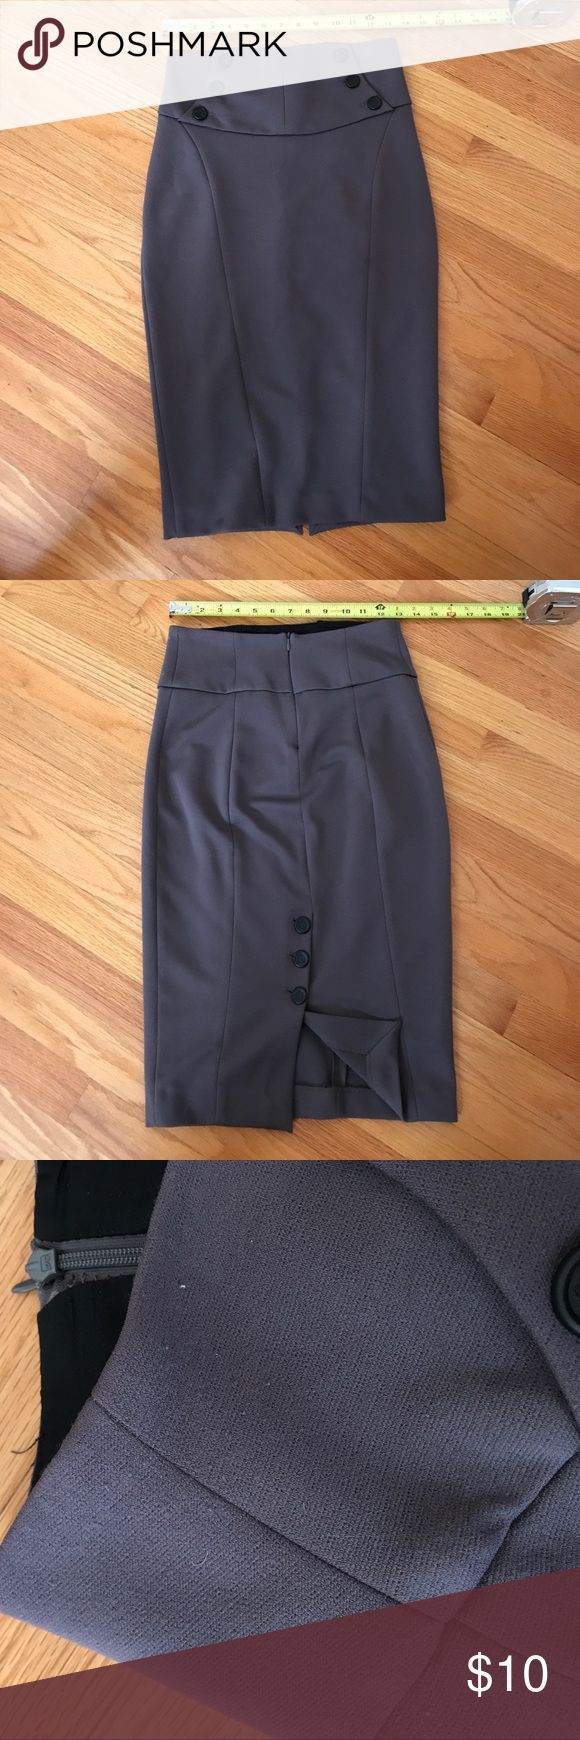 Zara taupe brown pencil skirt with button detail Gently used Zara basic taupe brown pencil skirt with cute button detail at the waist and back slit. Size xs. There is some very minor pilling at the right hip. Zara Skirts Pencil